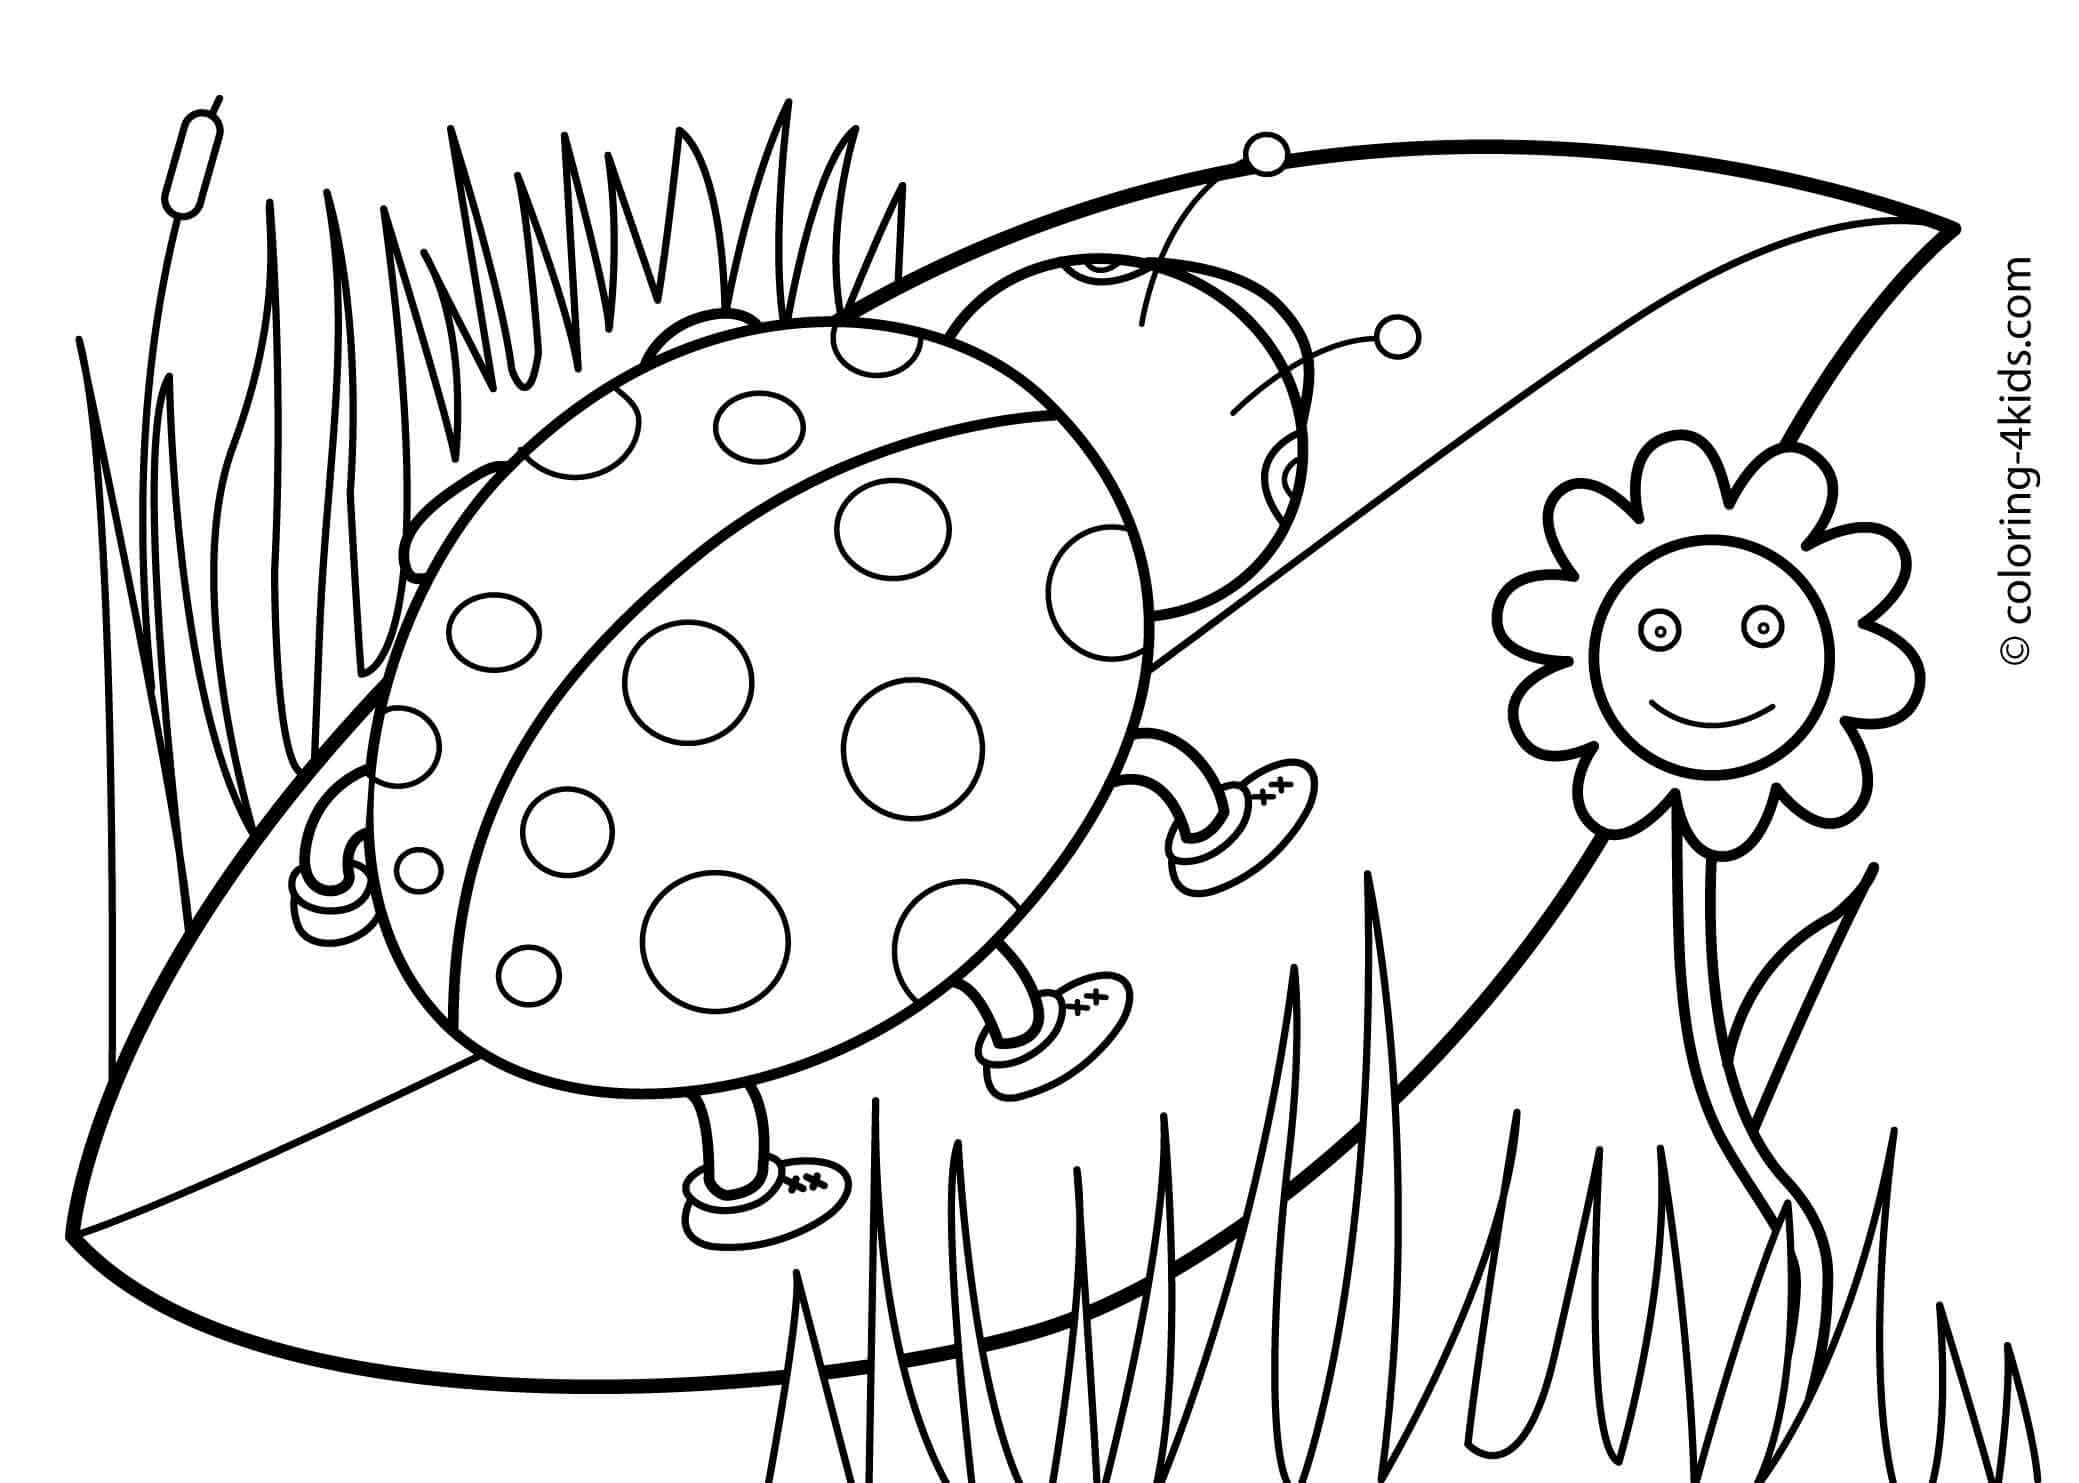 Spring Landscape Coloring Pages - Coloring Home